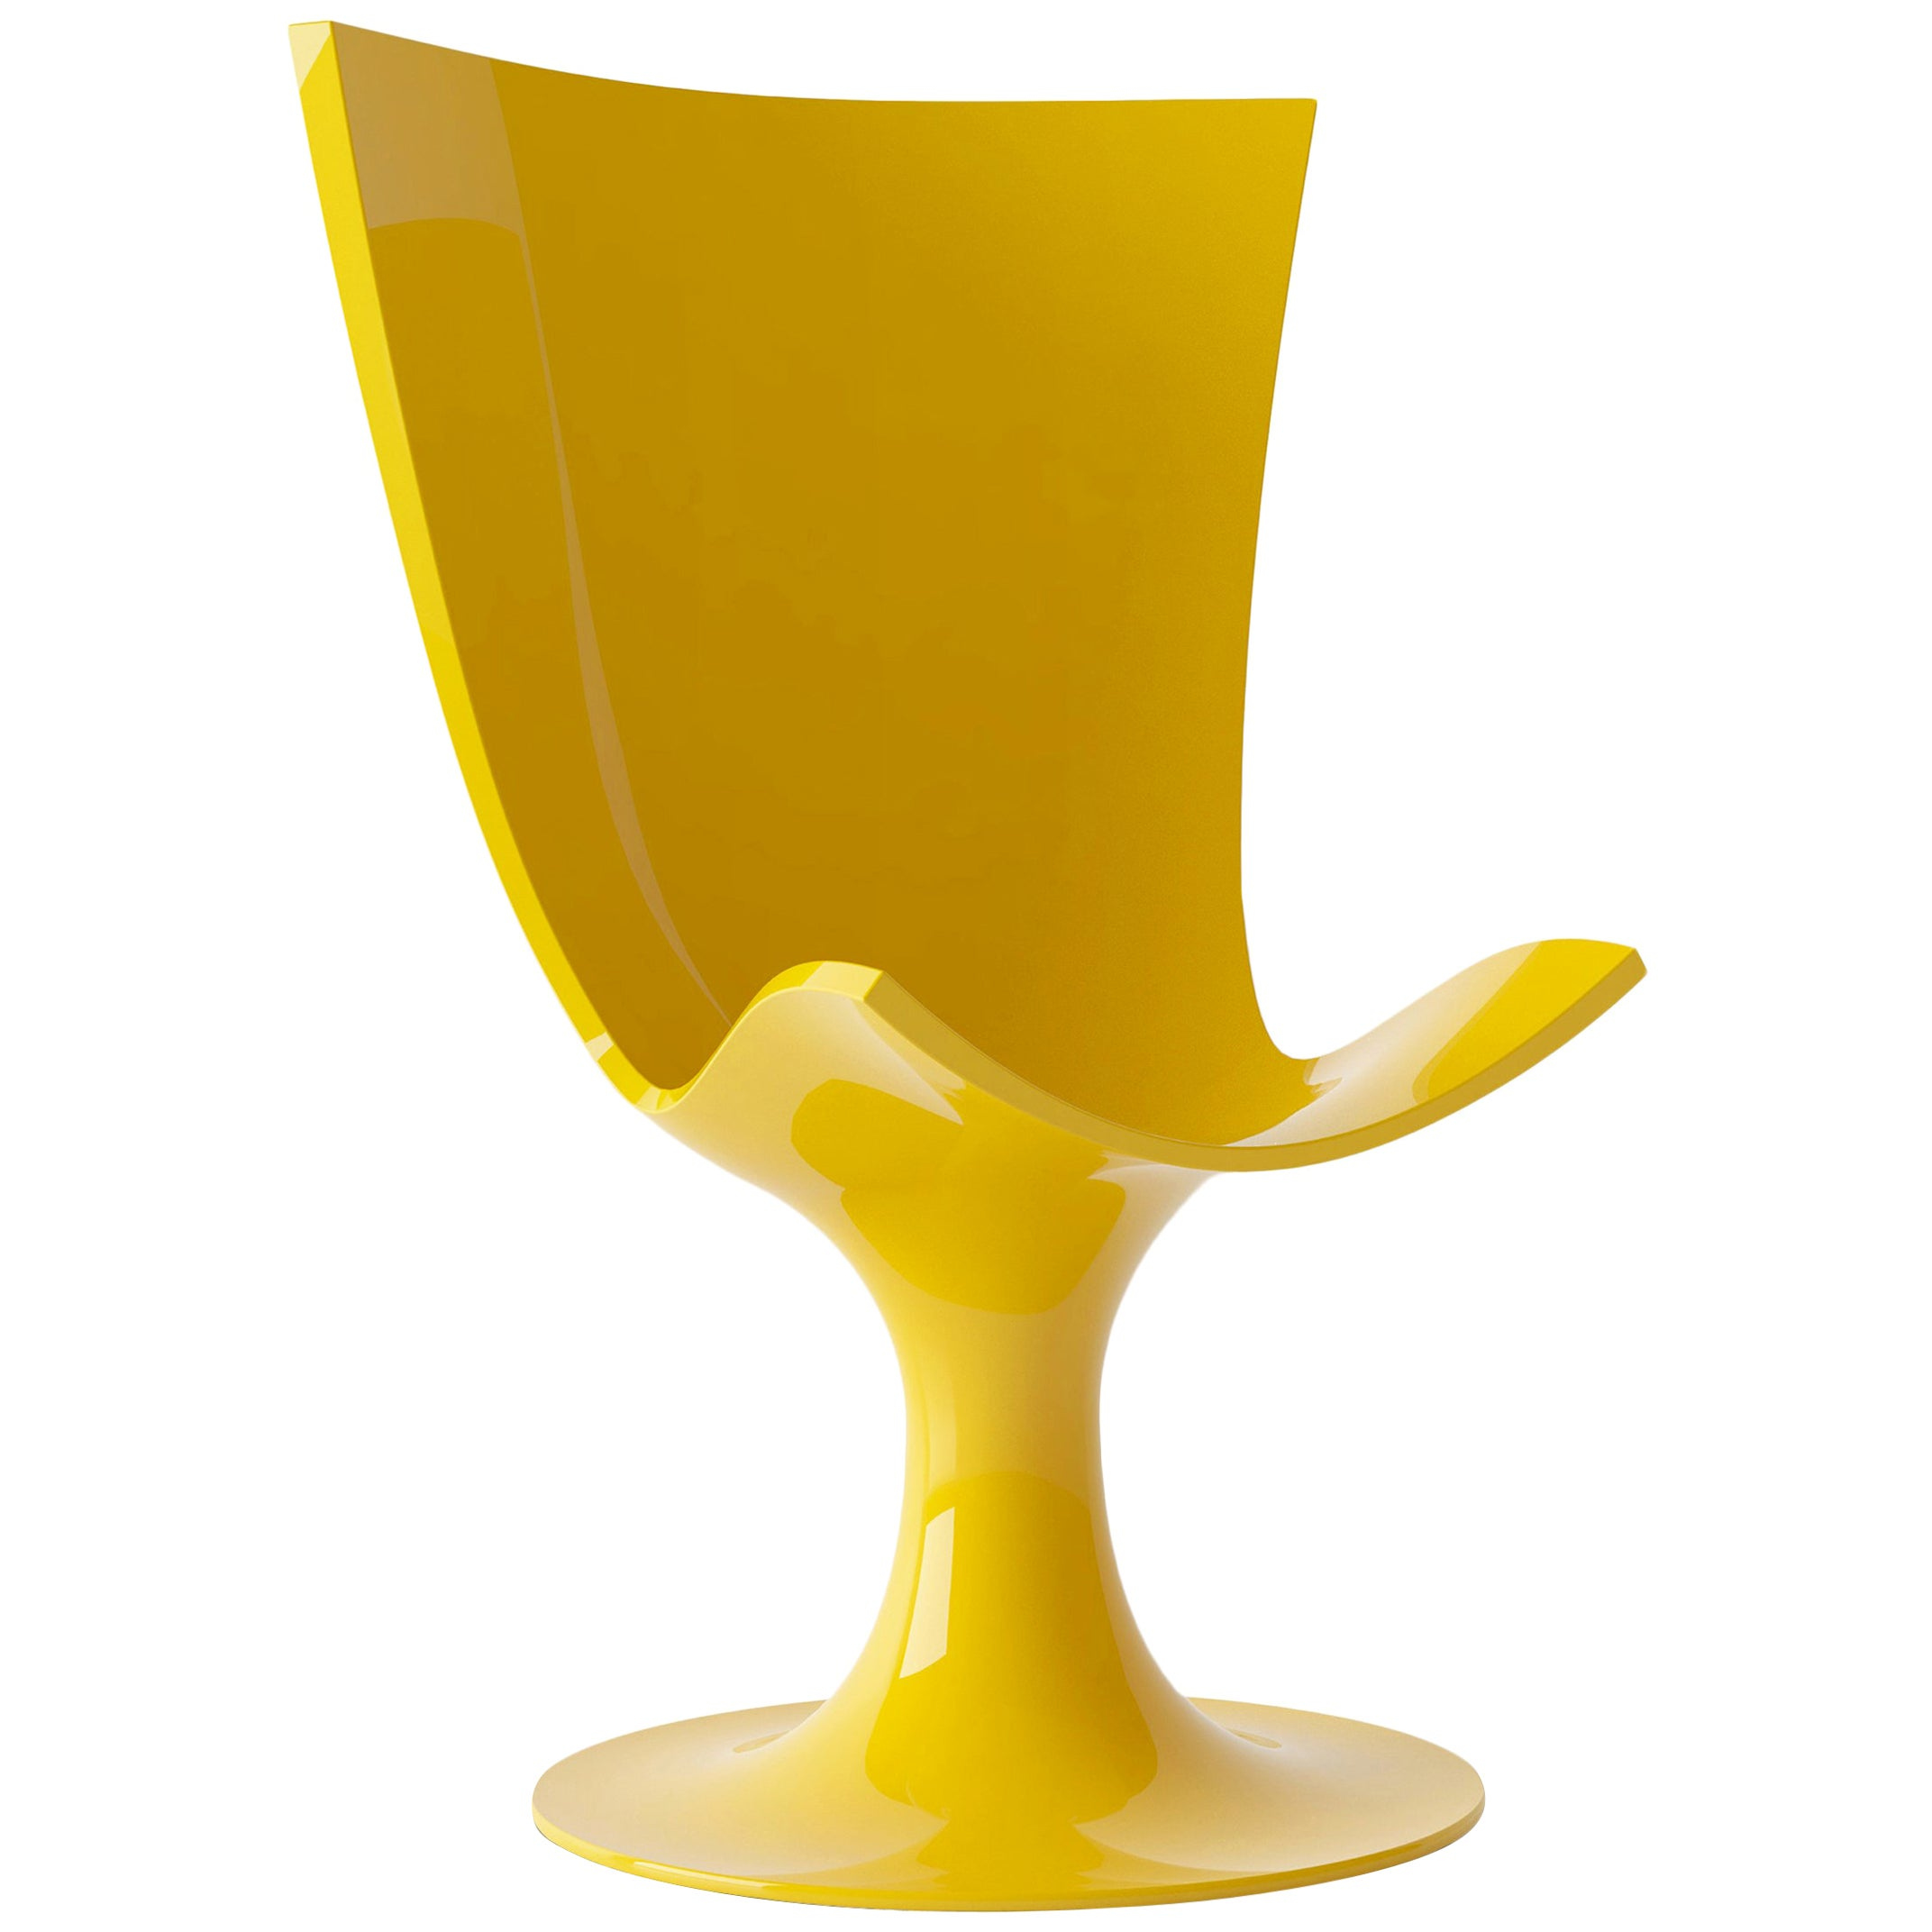 Imposing Yellow Seat, Decorative and Sculptural Santos Chair by Joel Escalona